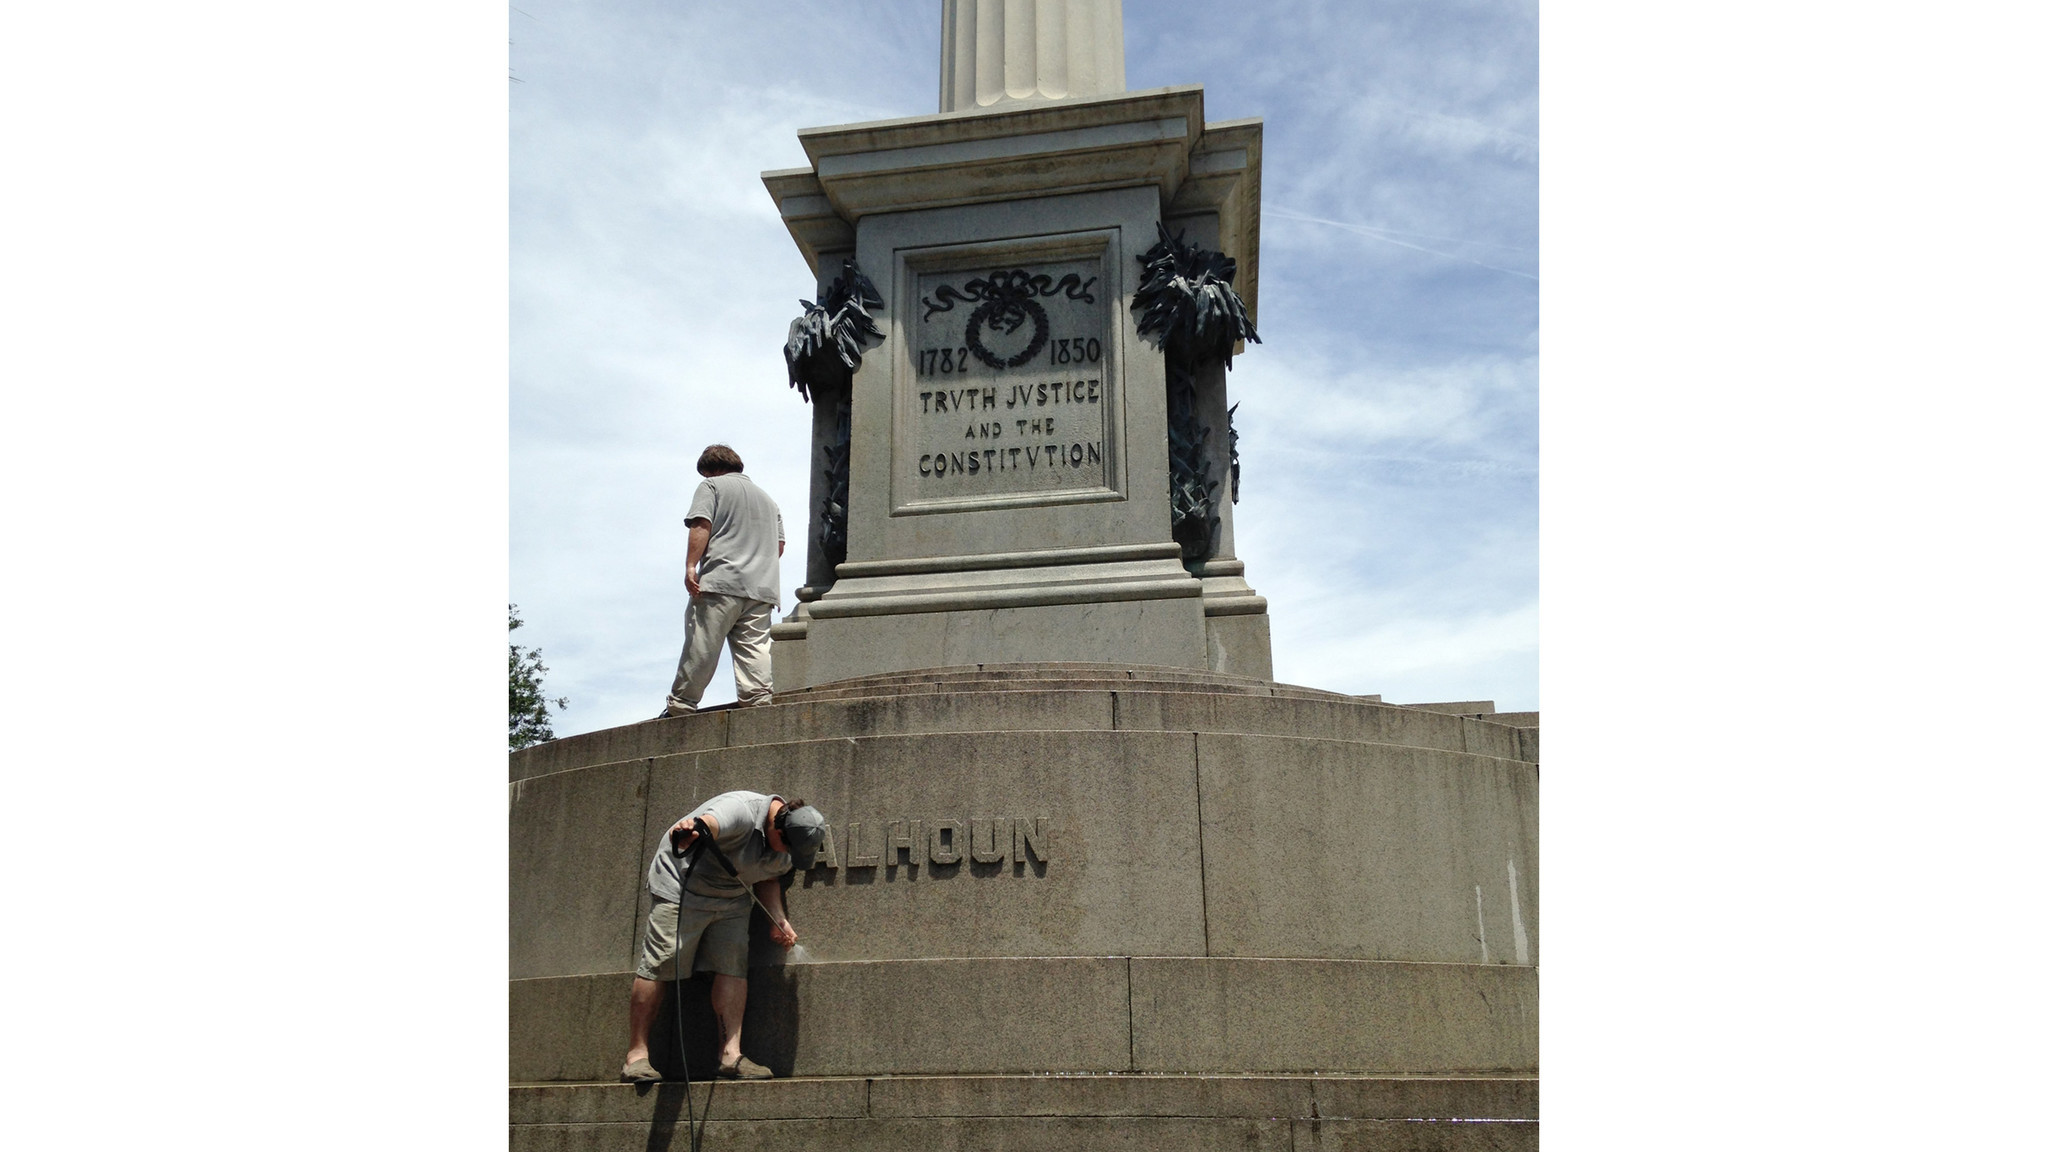 A June 23, 2015, file photo shows workmen removing graffiti from a statue of John C. Calhoun in Charleston, S.C.